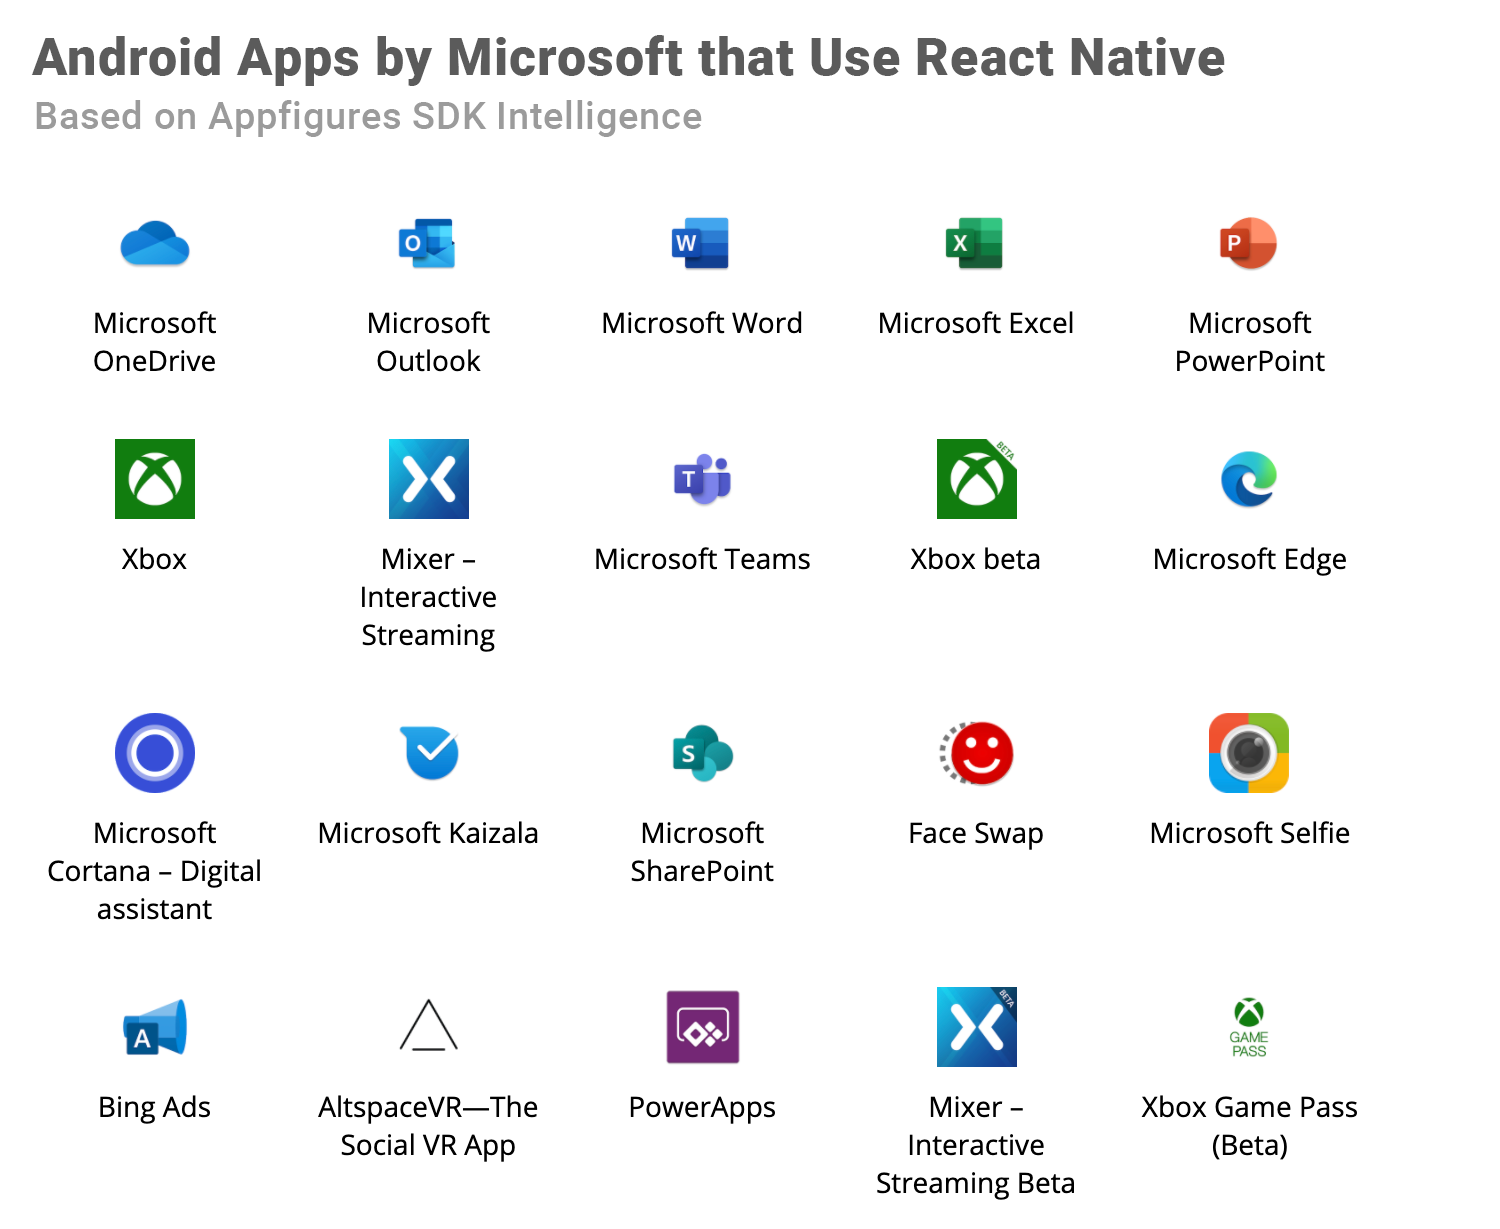 Android apps by Microsoft that use React Native